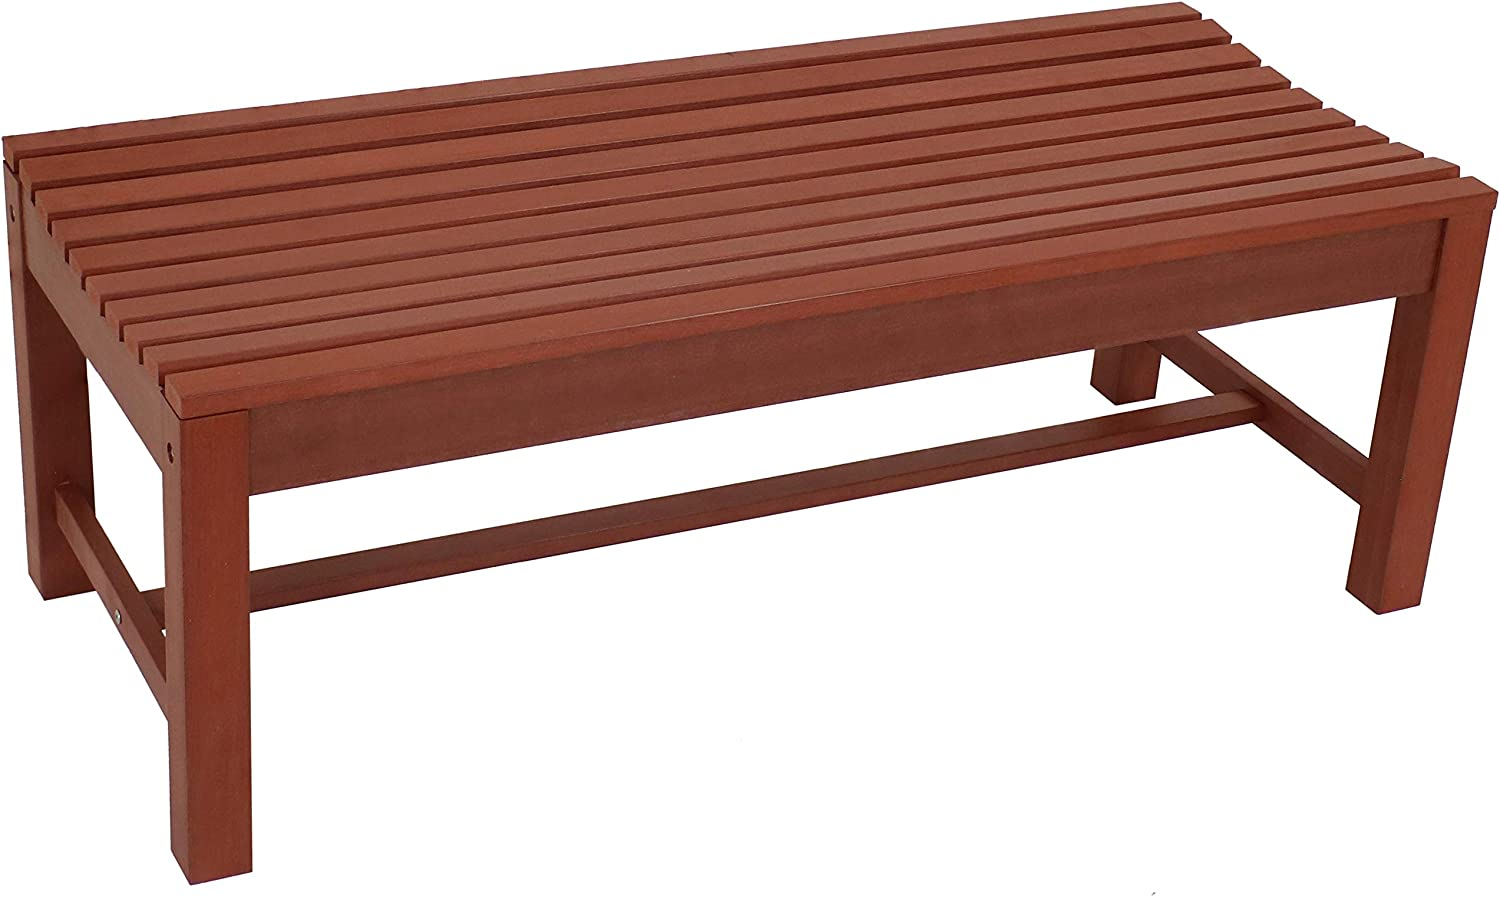 Sunnydaze Shandon Outdoor Backless Bench - Waterproof and Weather-Resistant Faux Wood HDPE Patio Furniture - Outside Seating for Lawn, Garden, Balcony and Backyard - 50-Inch - Cherry Finish